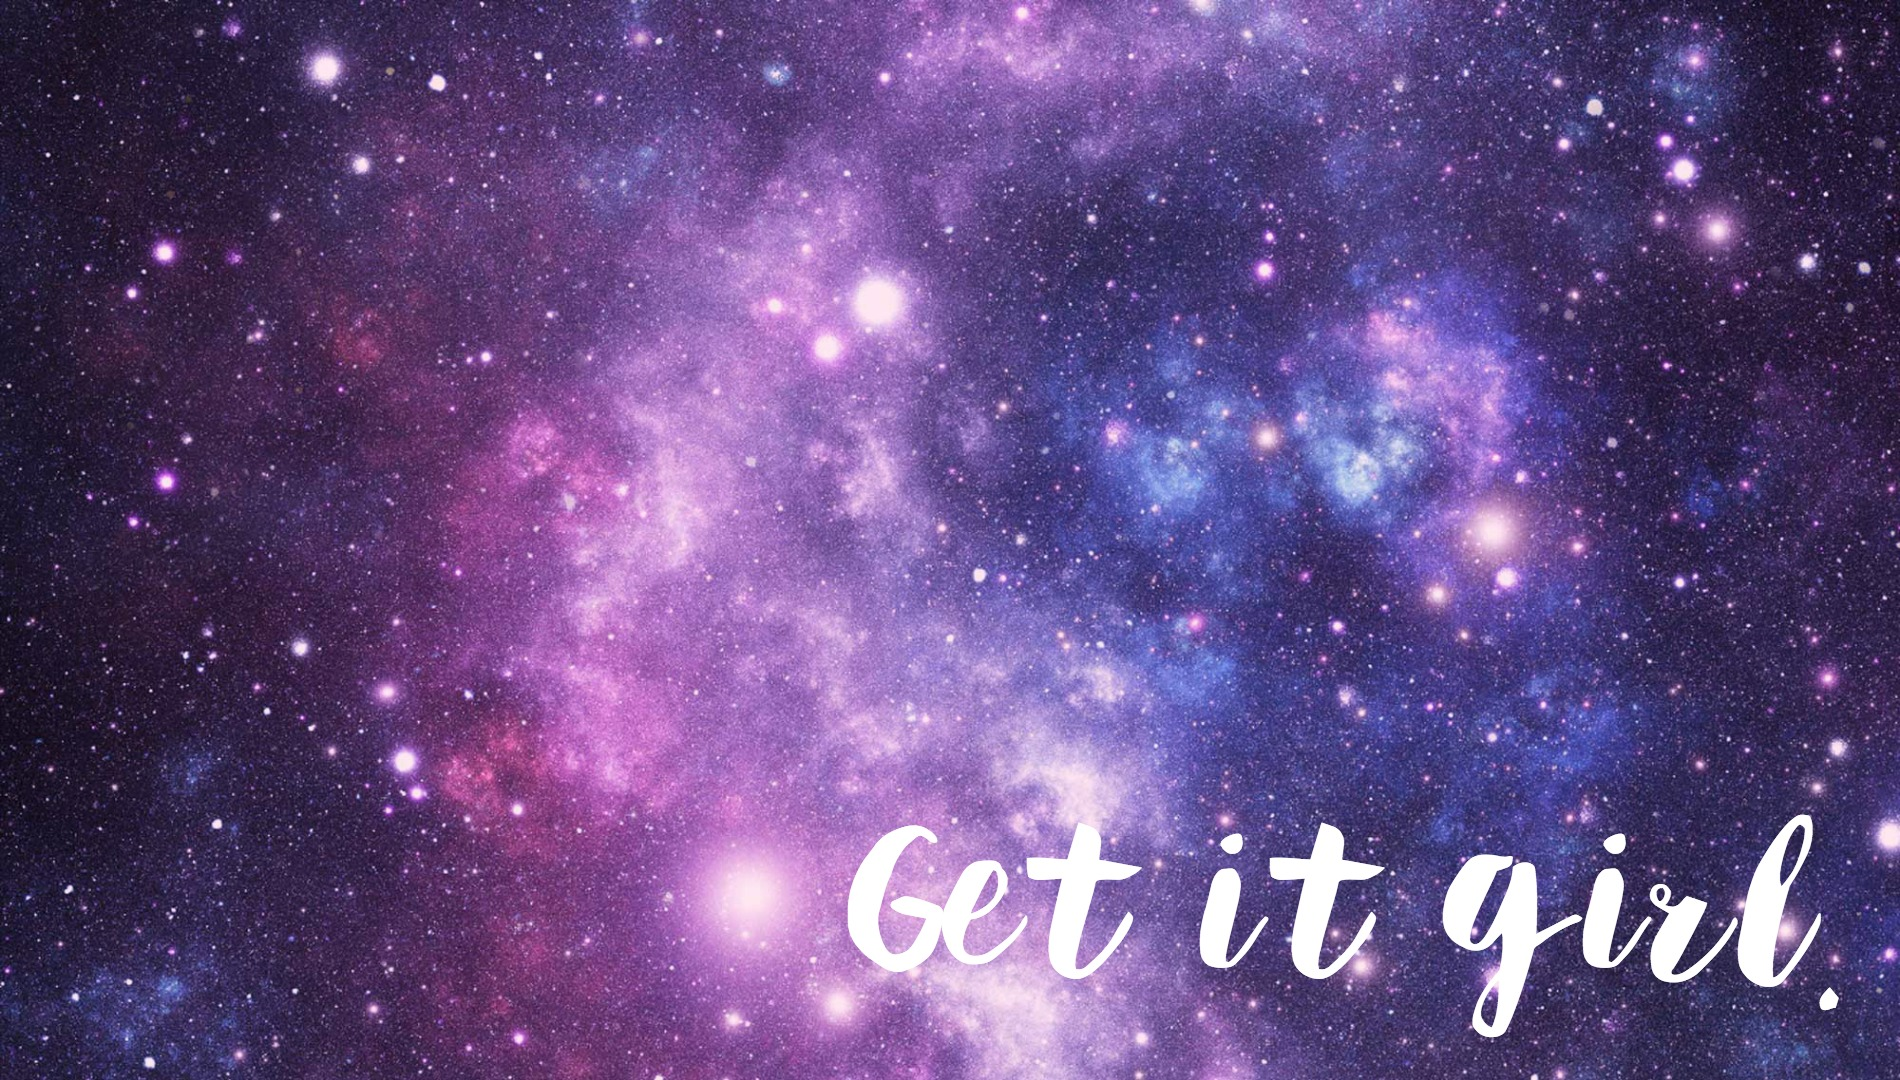 Go Get It Girl Laptop Wallpaper Motivational Desktop Wallpapers To Amp You Up For The New